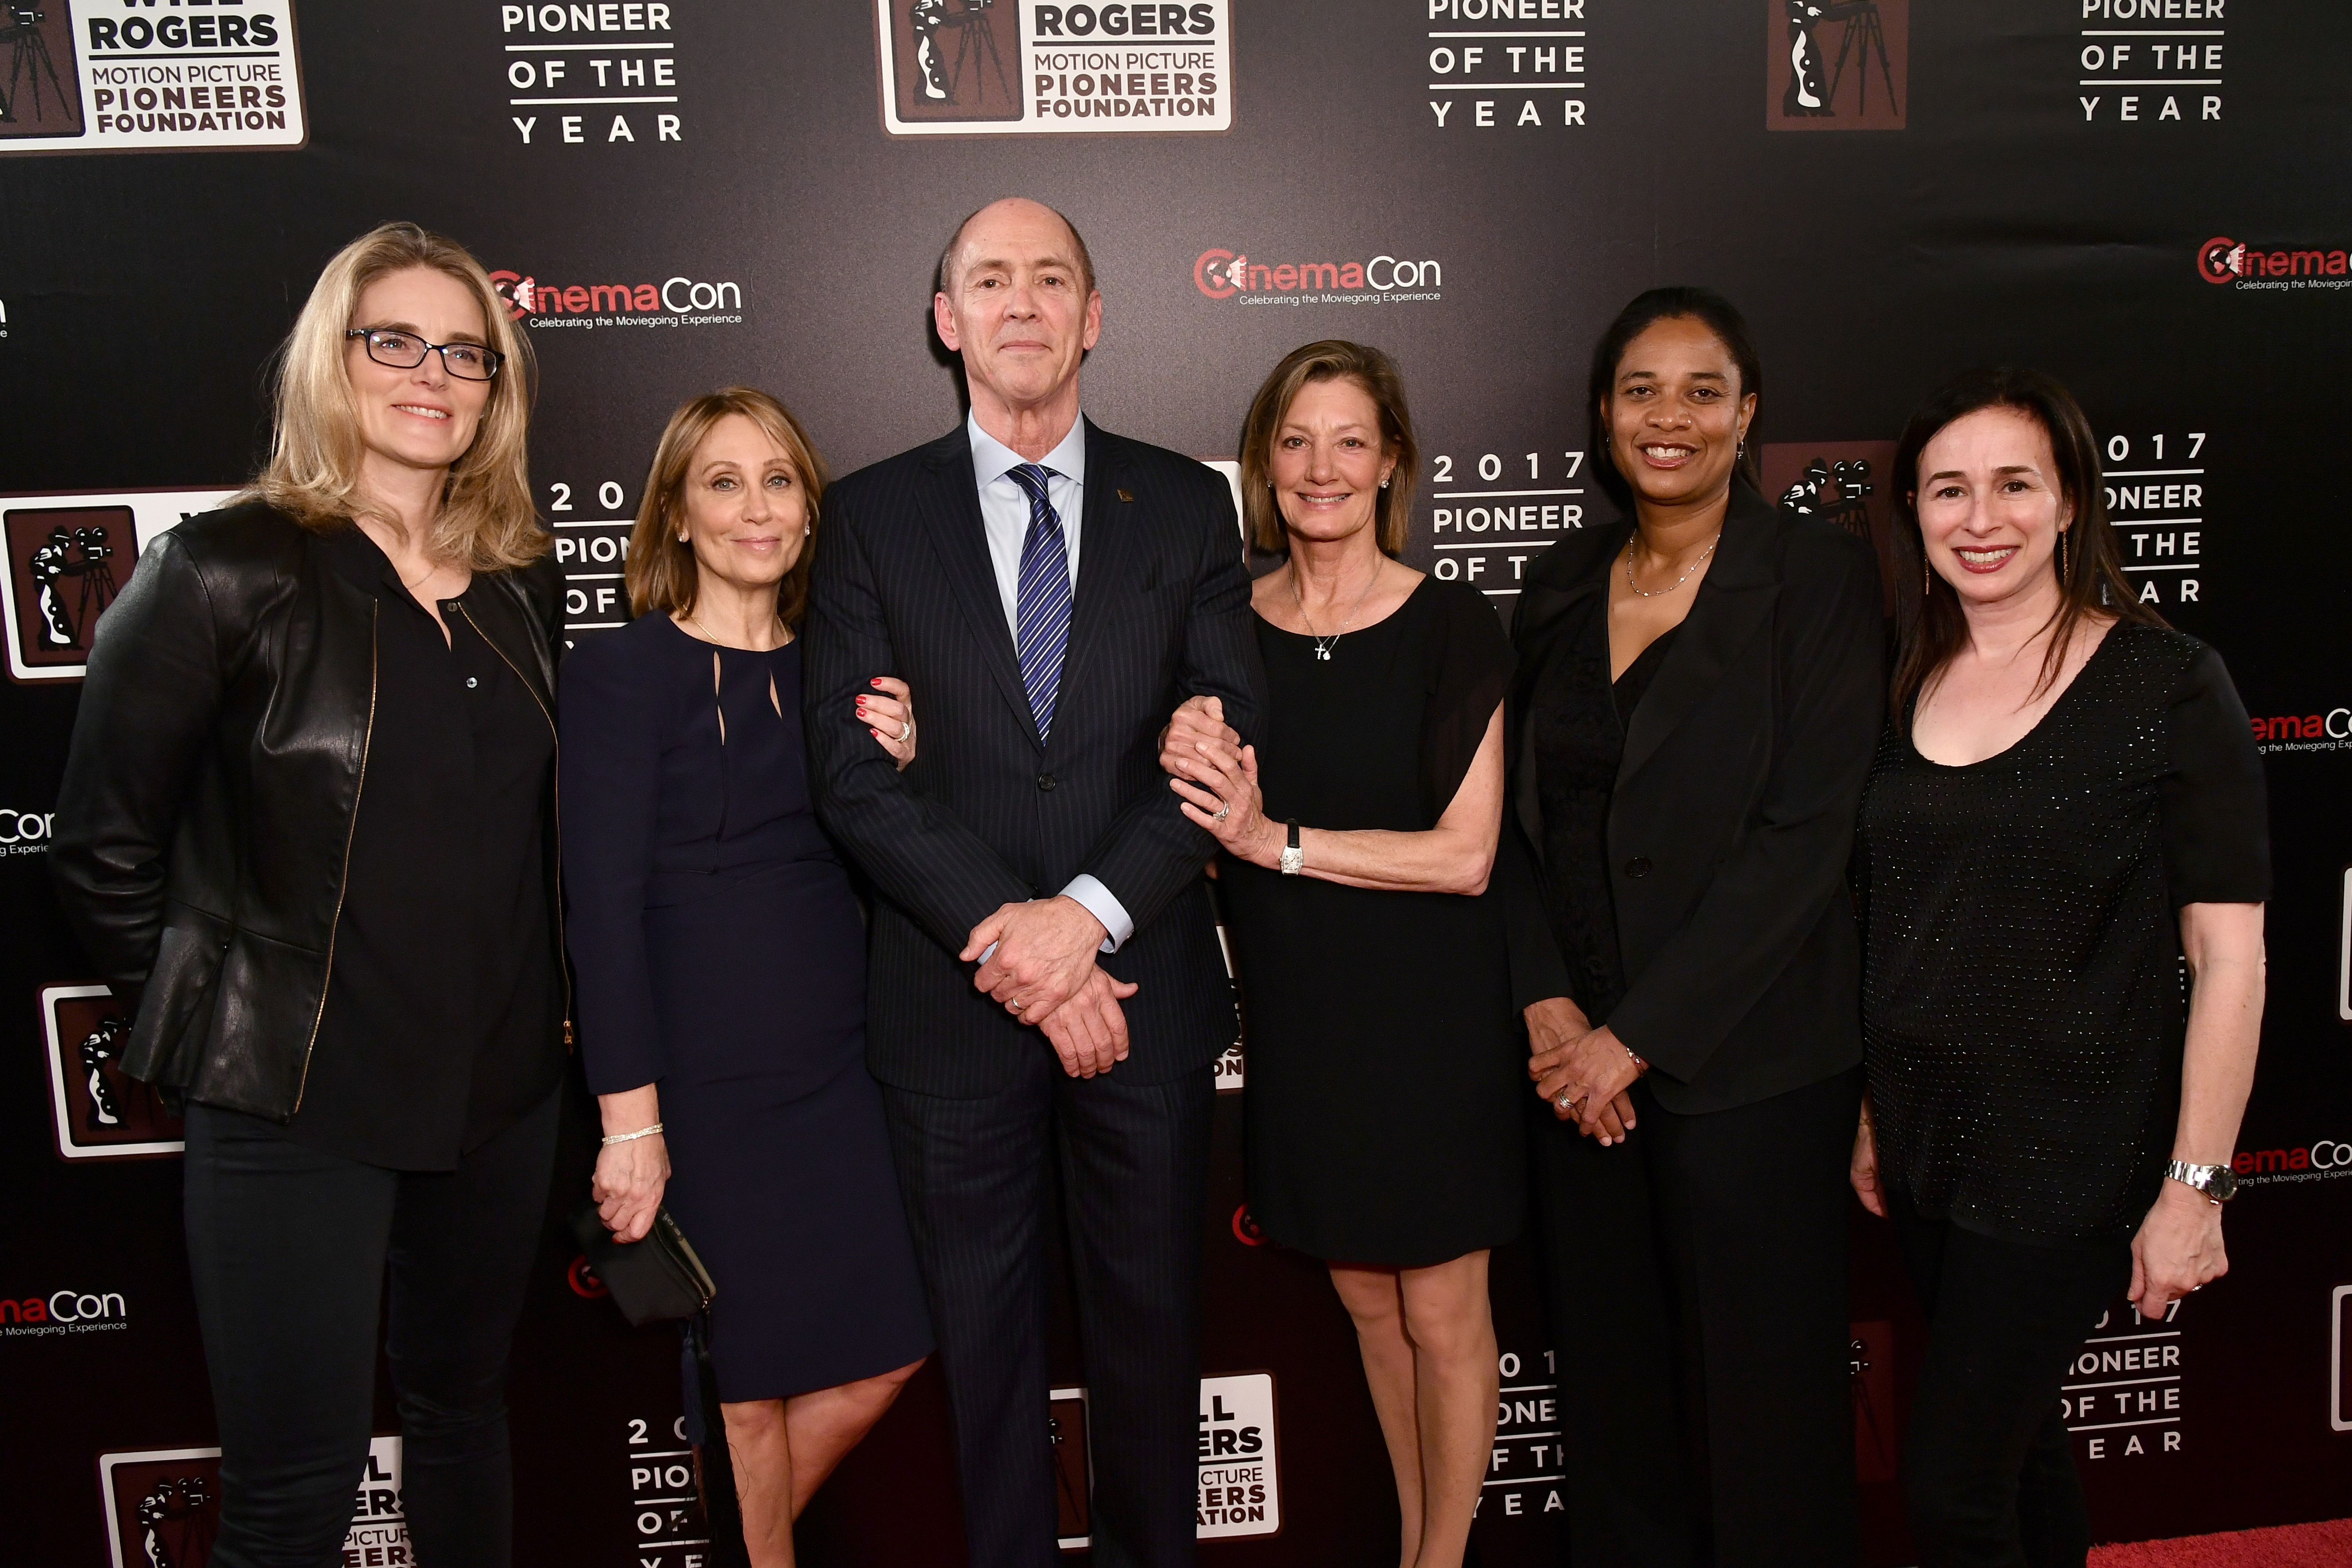 Emma Watts, Stacey Snider, Chris Aronson, Elizabeth Gabler, Vanessa Morrison and Pam LevinePioneer Dinner of the Year, Arrivals, CinemaCon, Las Vegas, United States of America - March 29, 2017